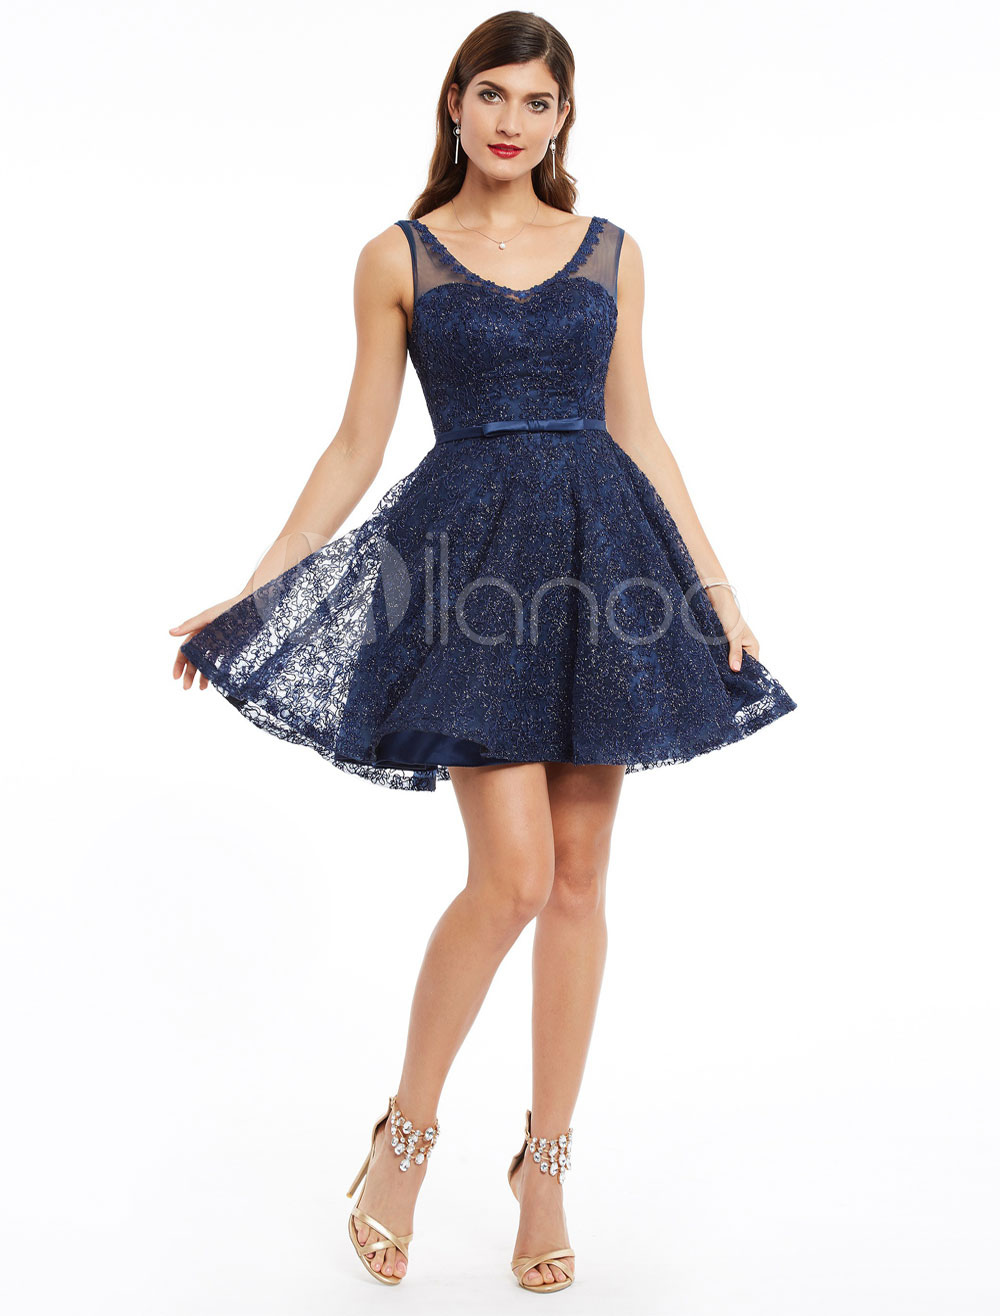 Homecoming Dress Short Dark Navy Cocktail Dress Lace V Neck Sleeveless Bow Sash Party Dresses